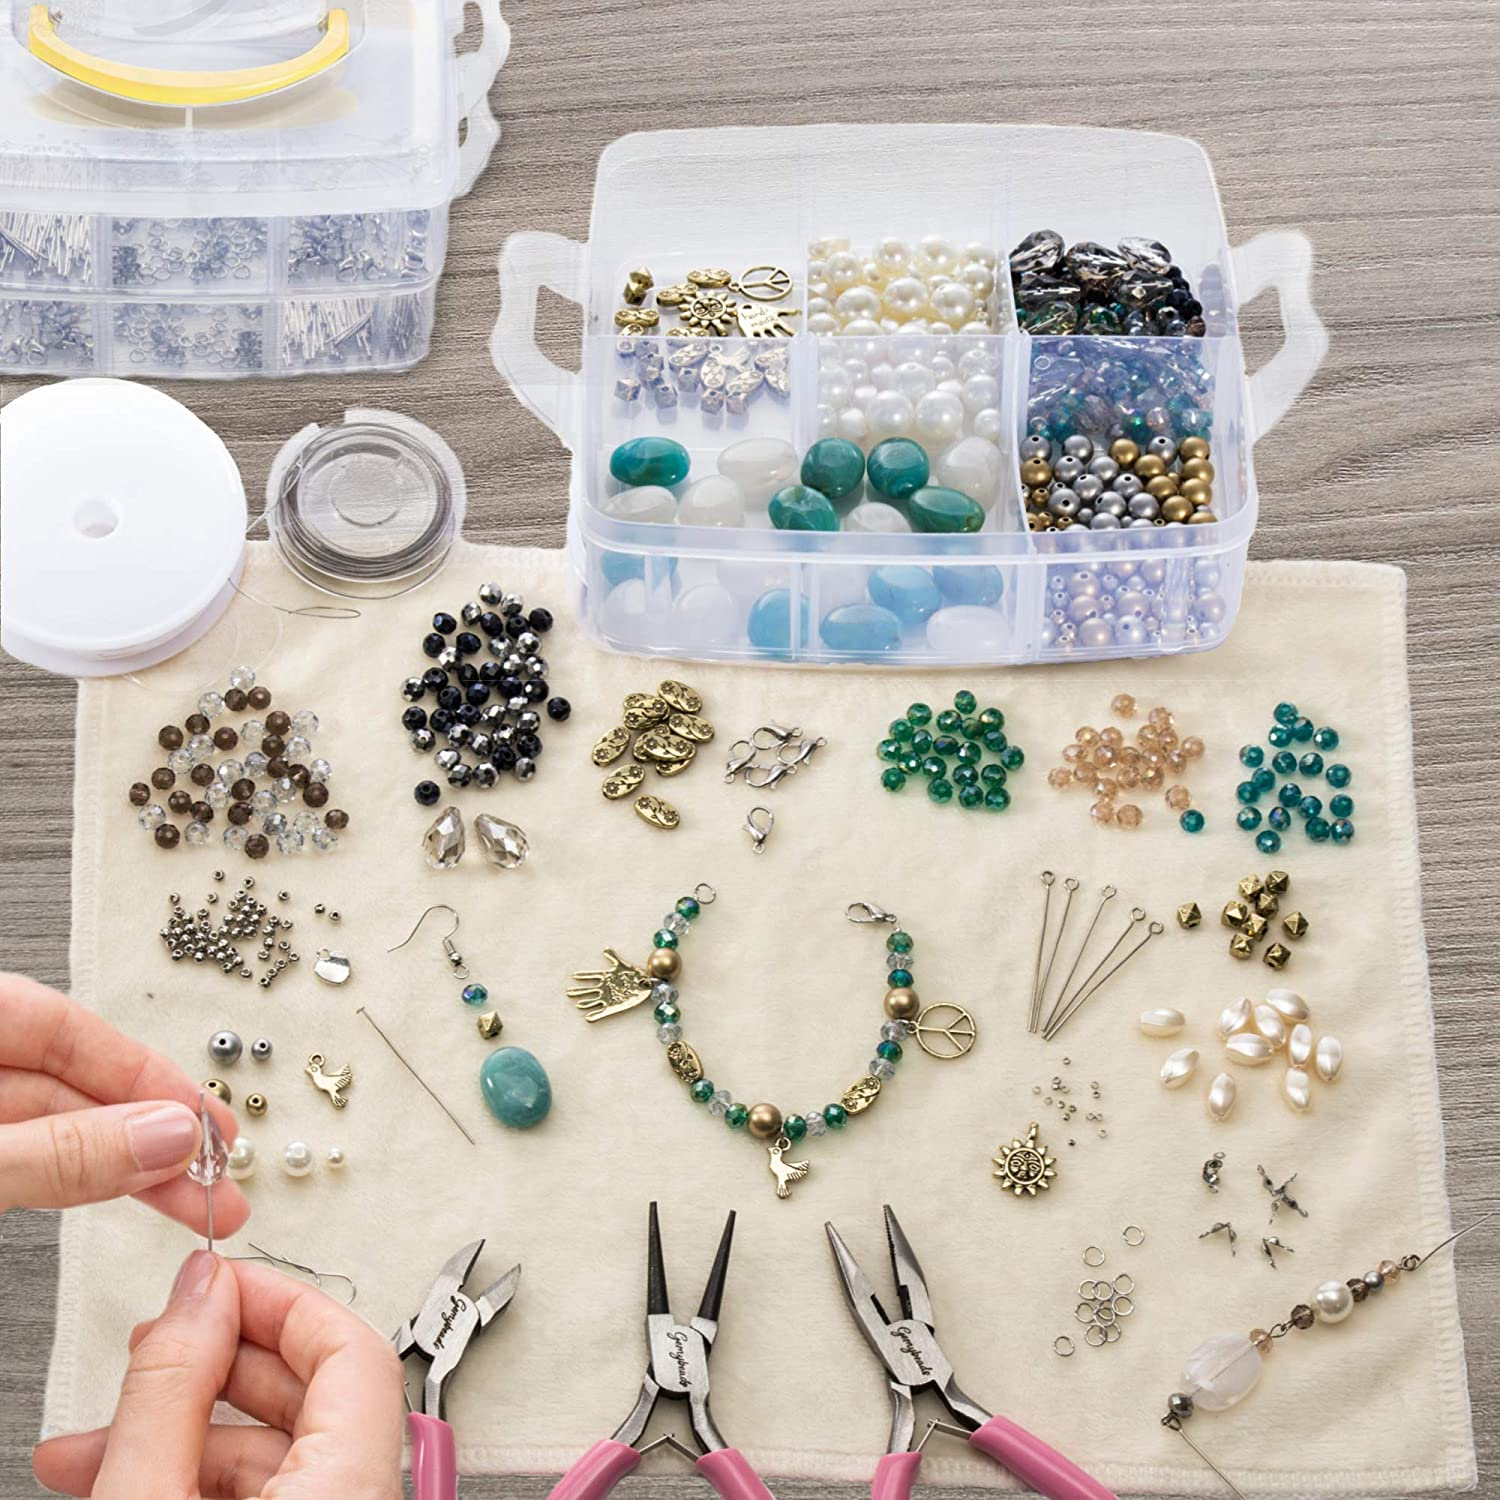 Huge Deluxe Jewellery Making Kit with Beads Tools,Findings Booklet & much more Beading & Jewellery Kits